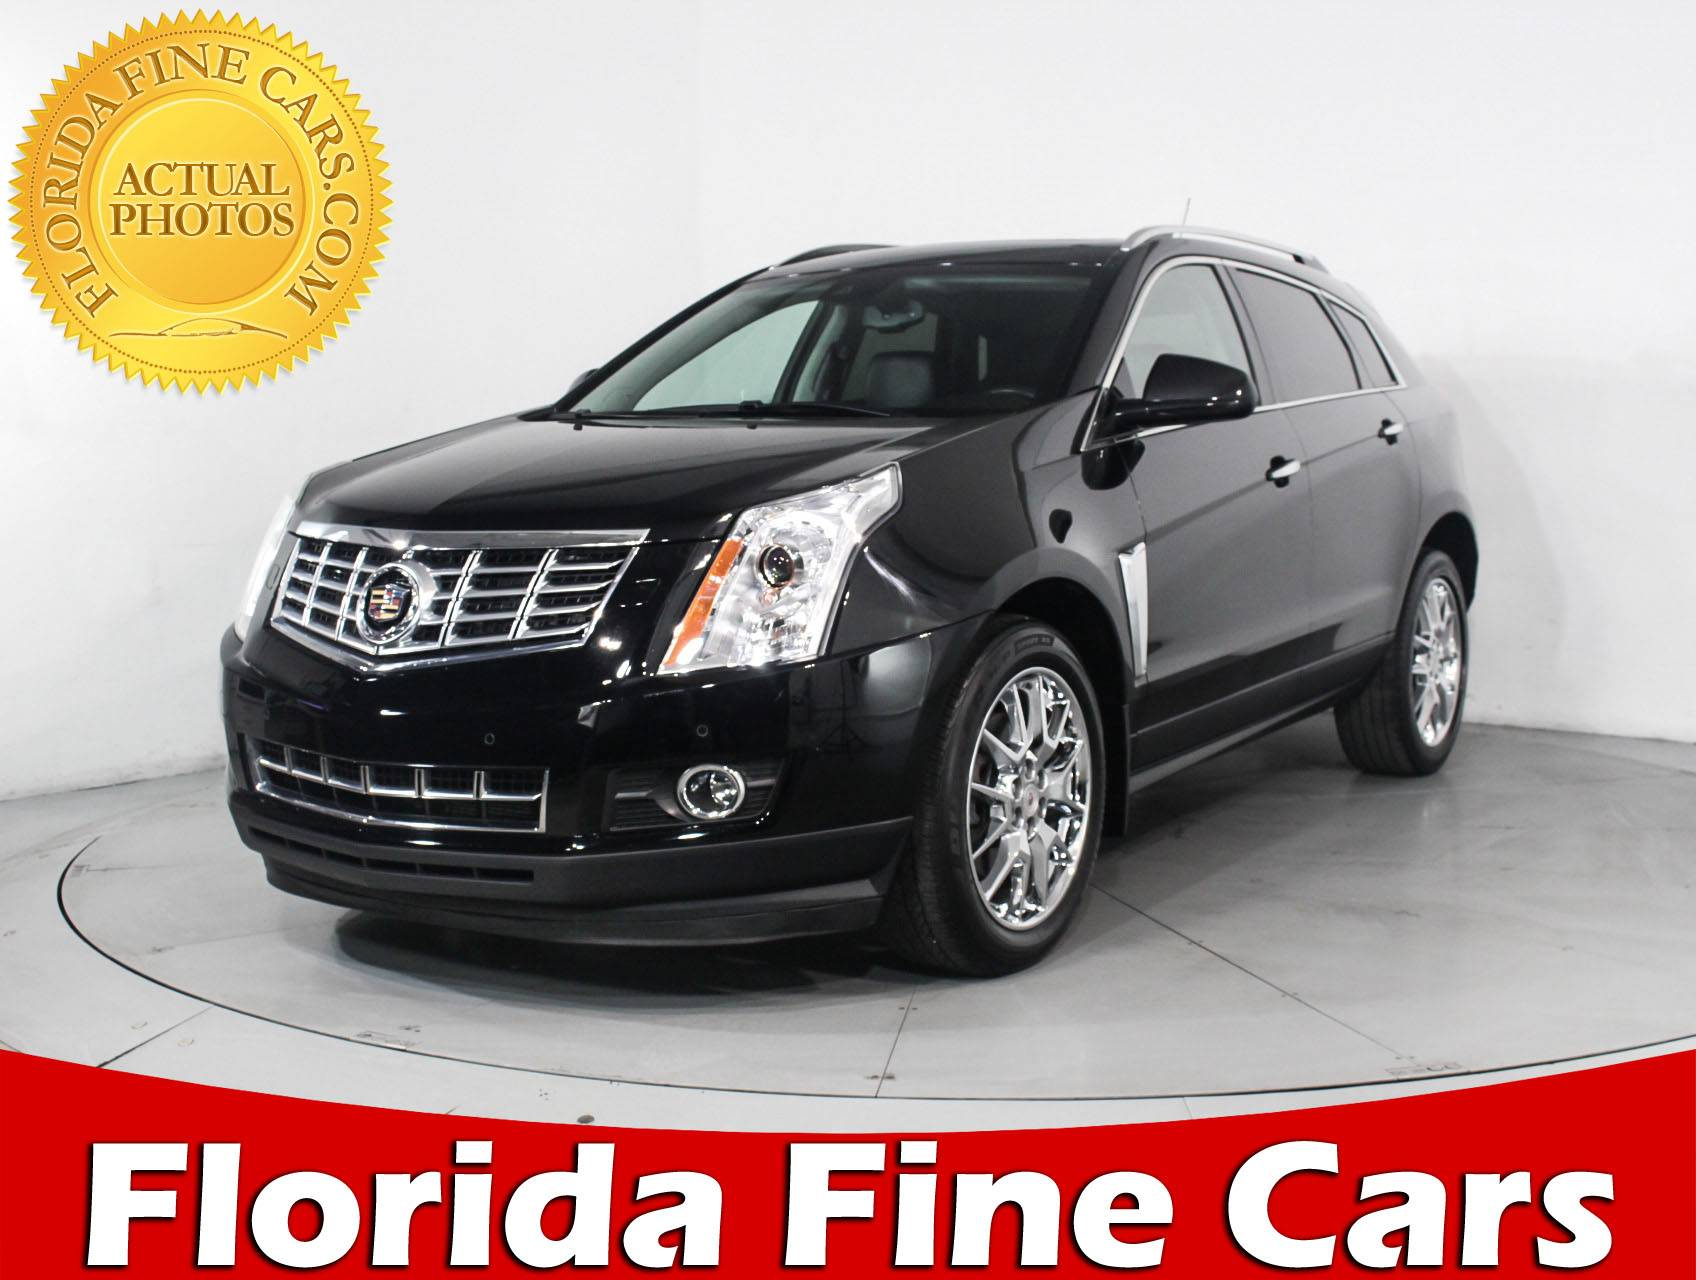 bedford in of srx city coast revo collection luxury mall ohio cadillac north auto